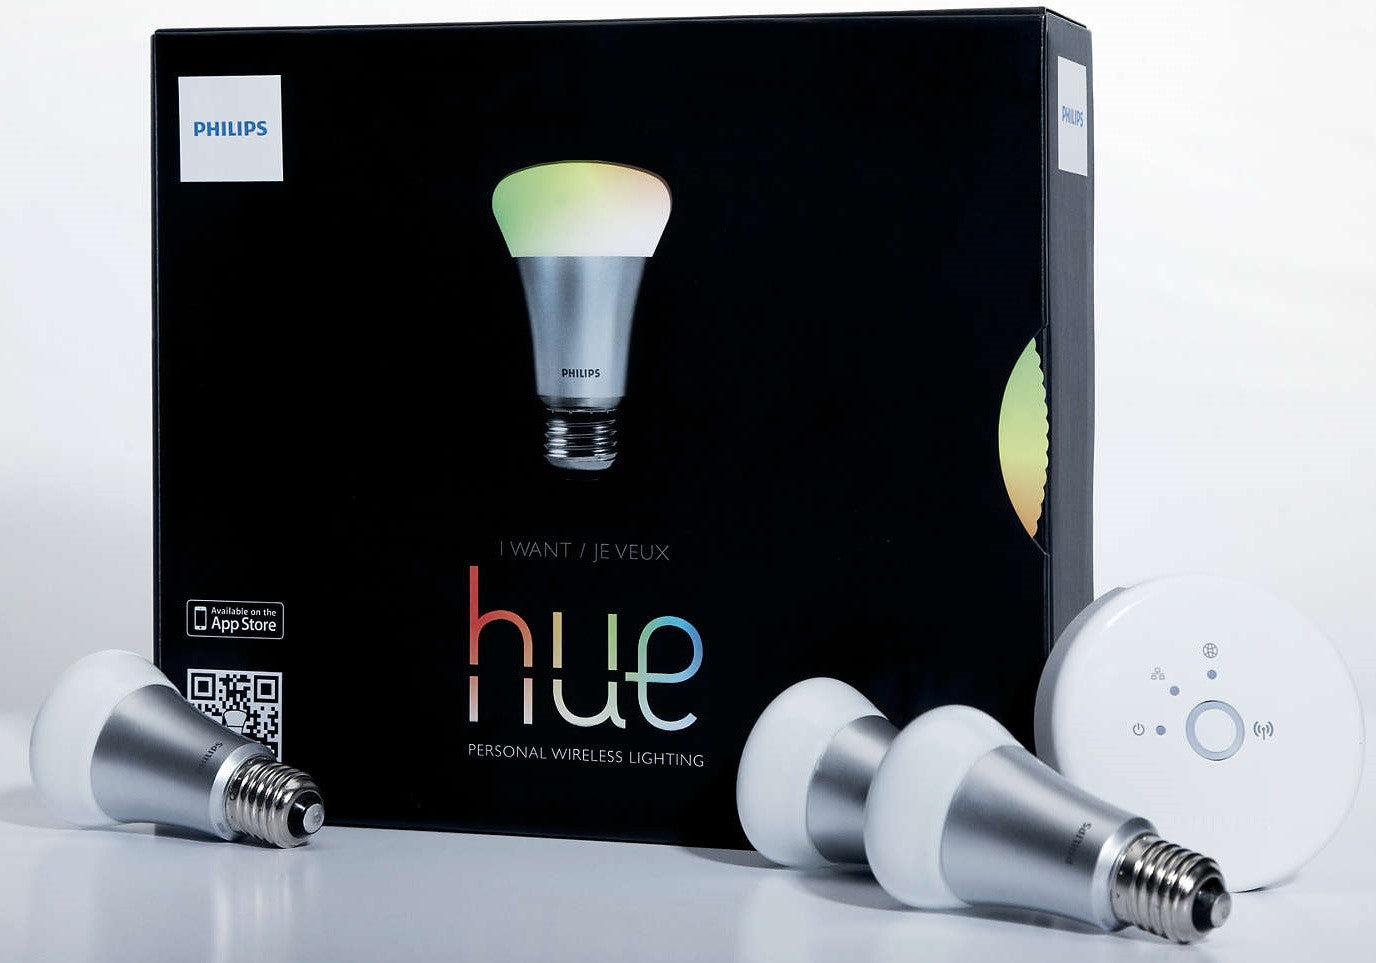 Philips Hue Starter Kit 3 9w E27 Led Bulbs Bridge Light Fluorescent Lamp Lights